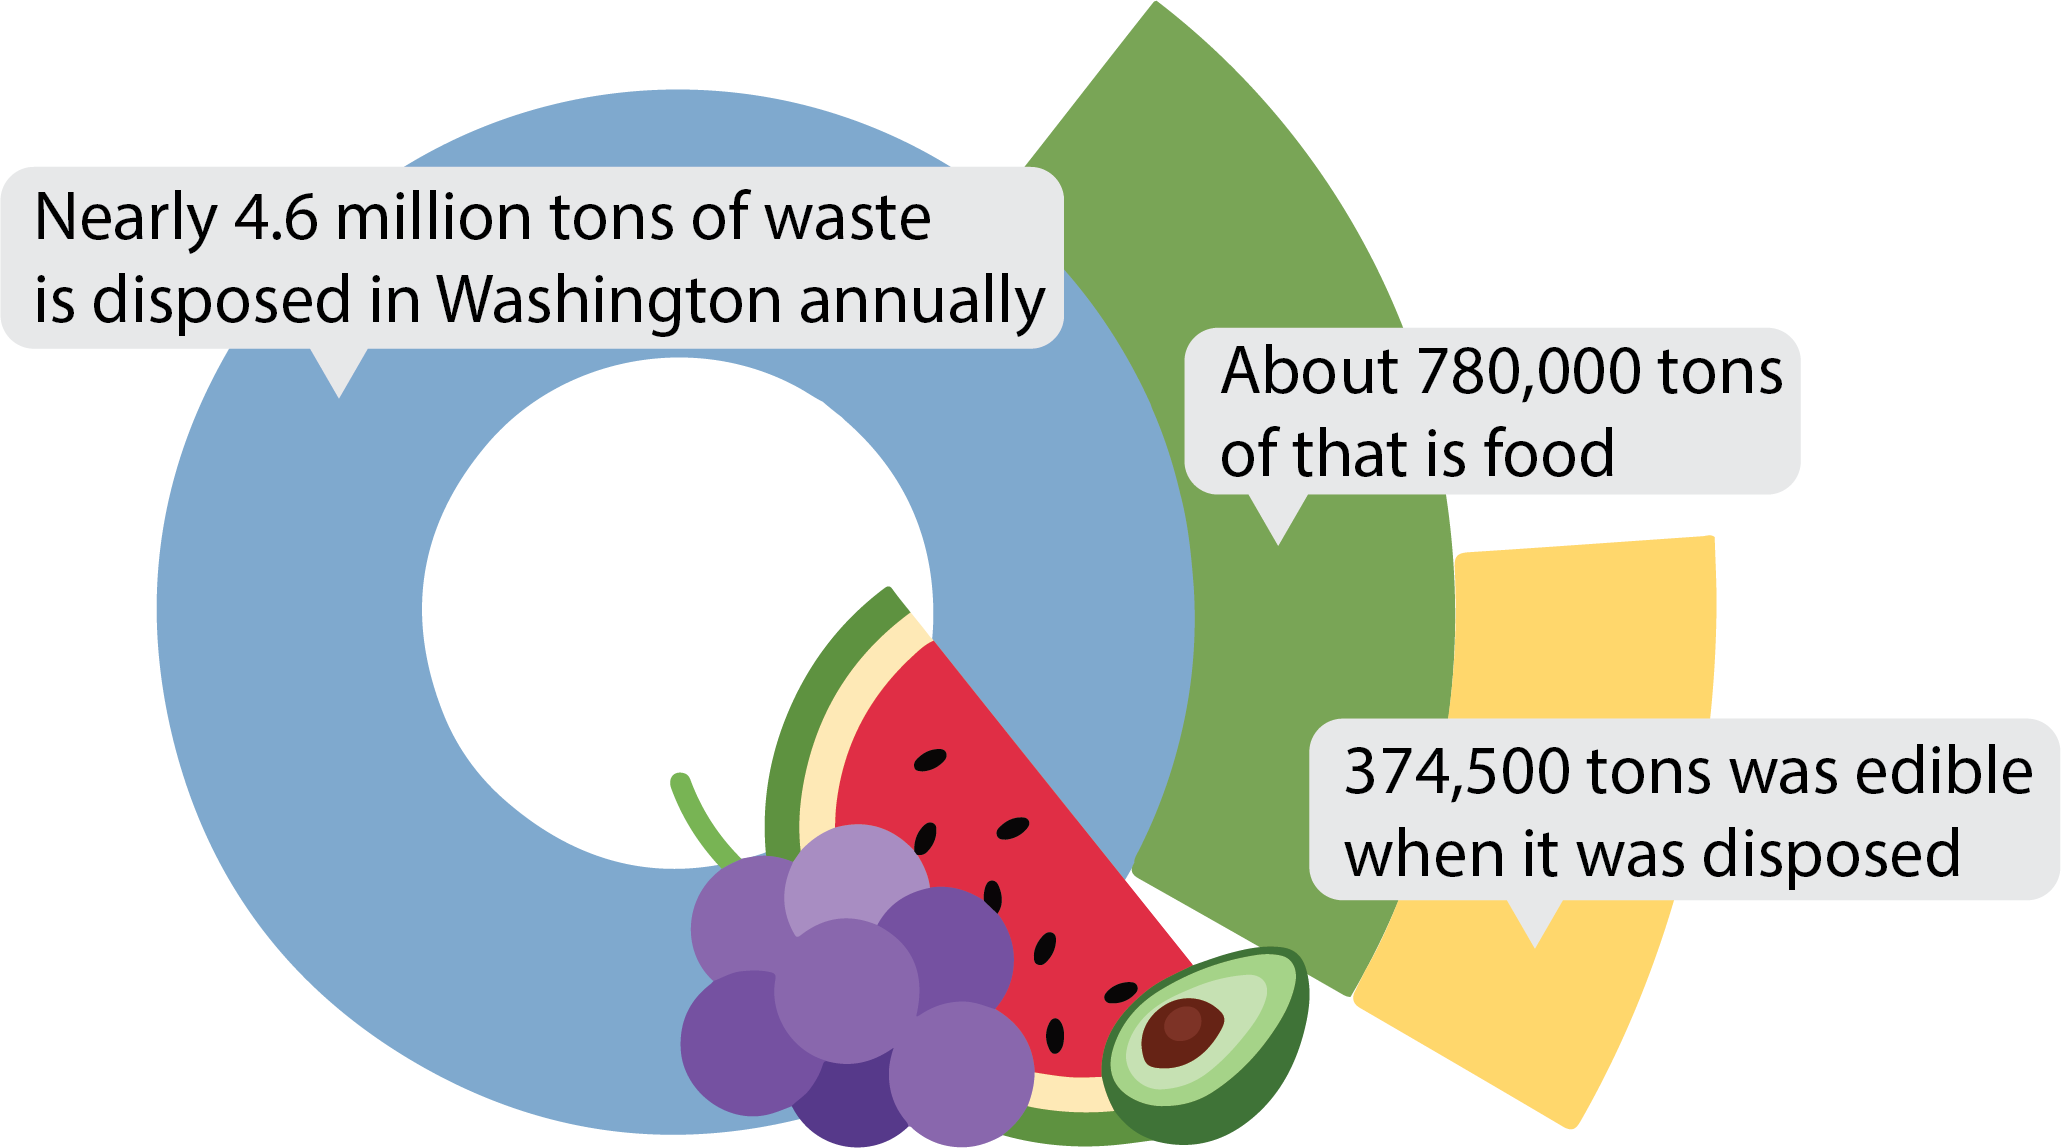 This pie chart shows the total waste generated in Washington (4.6 million tons), the amount of that which is food (780,000 tons), and how much was edible when disposed (566,000 tons).